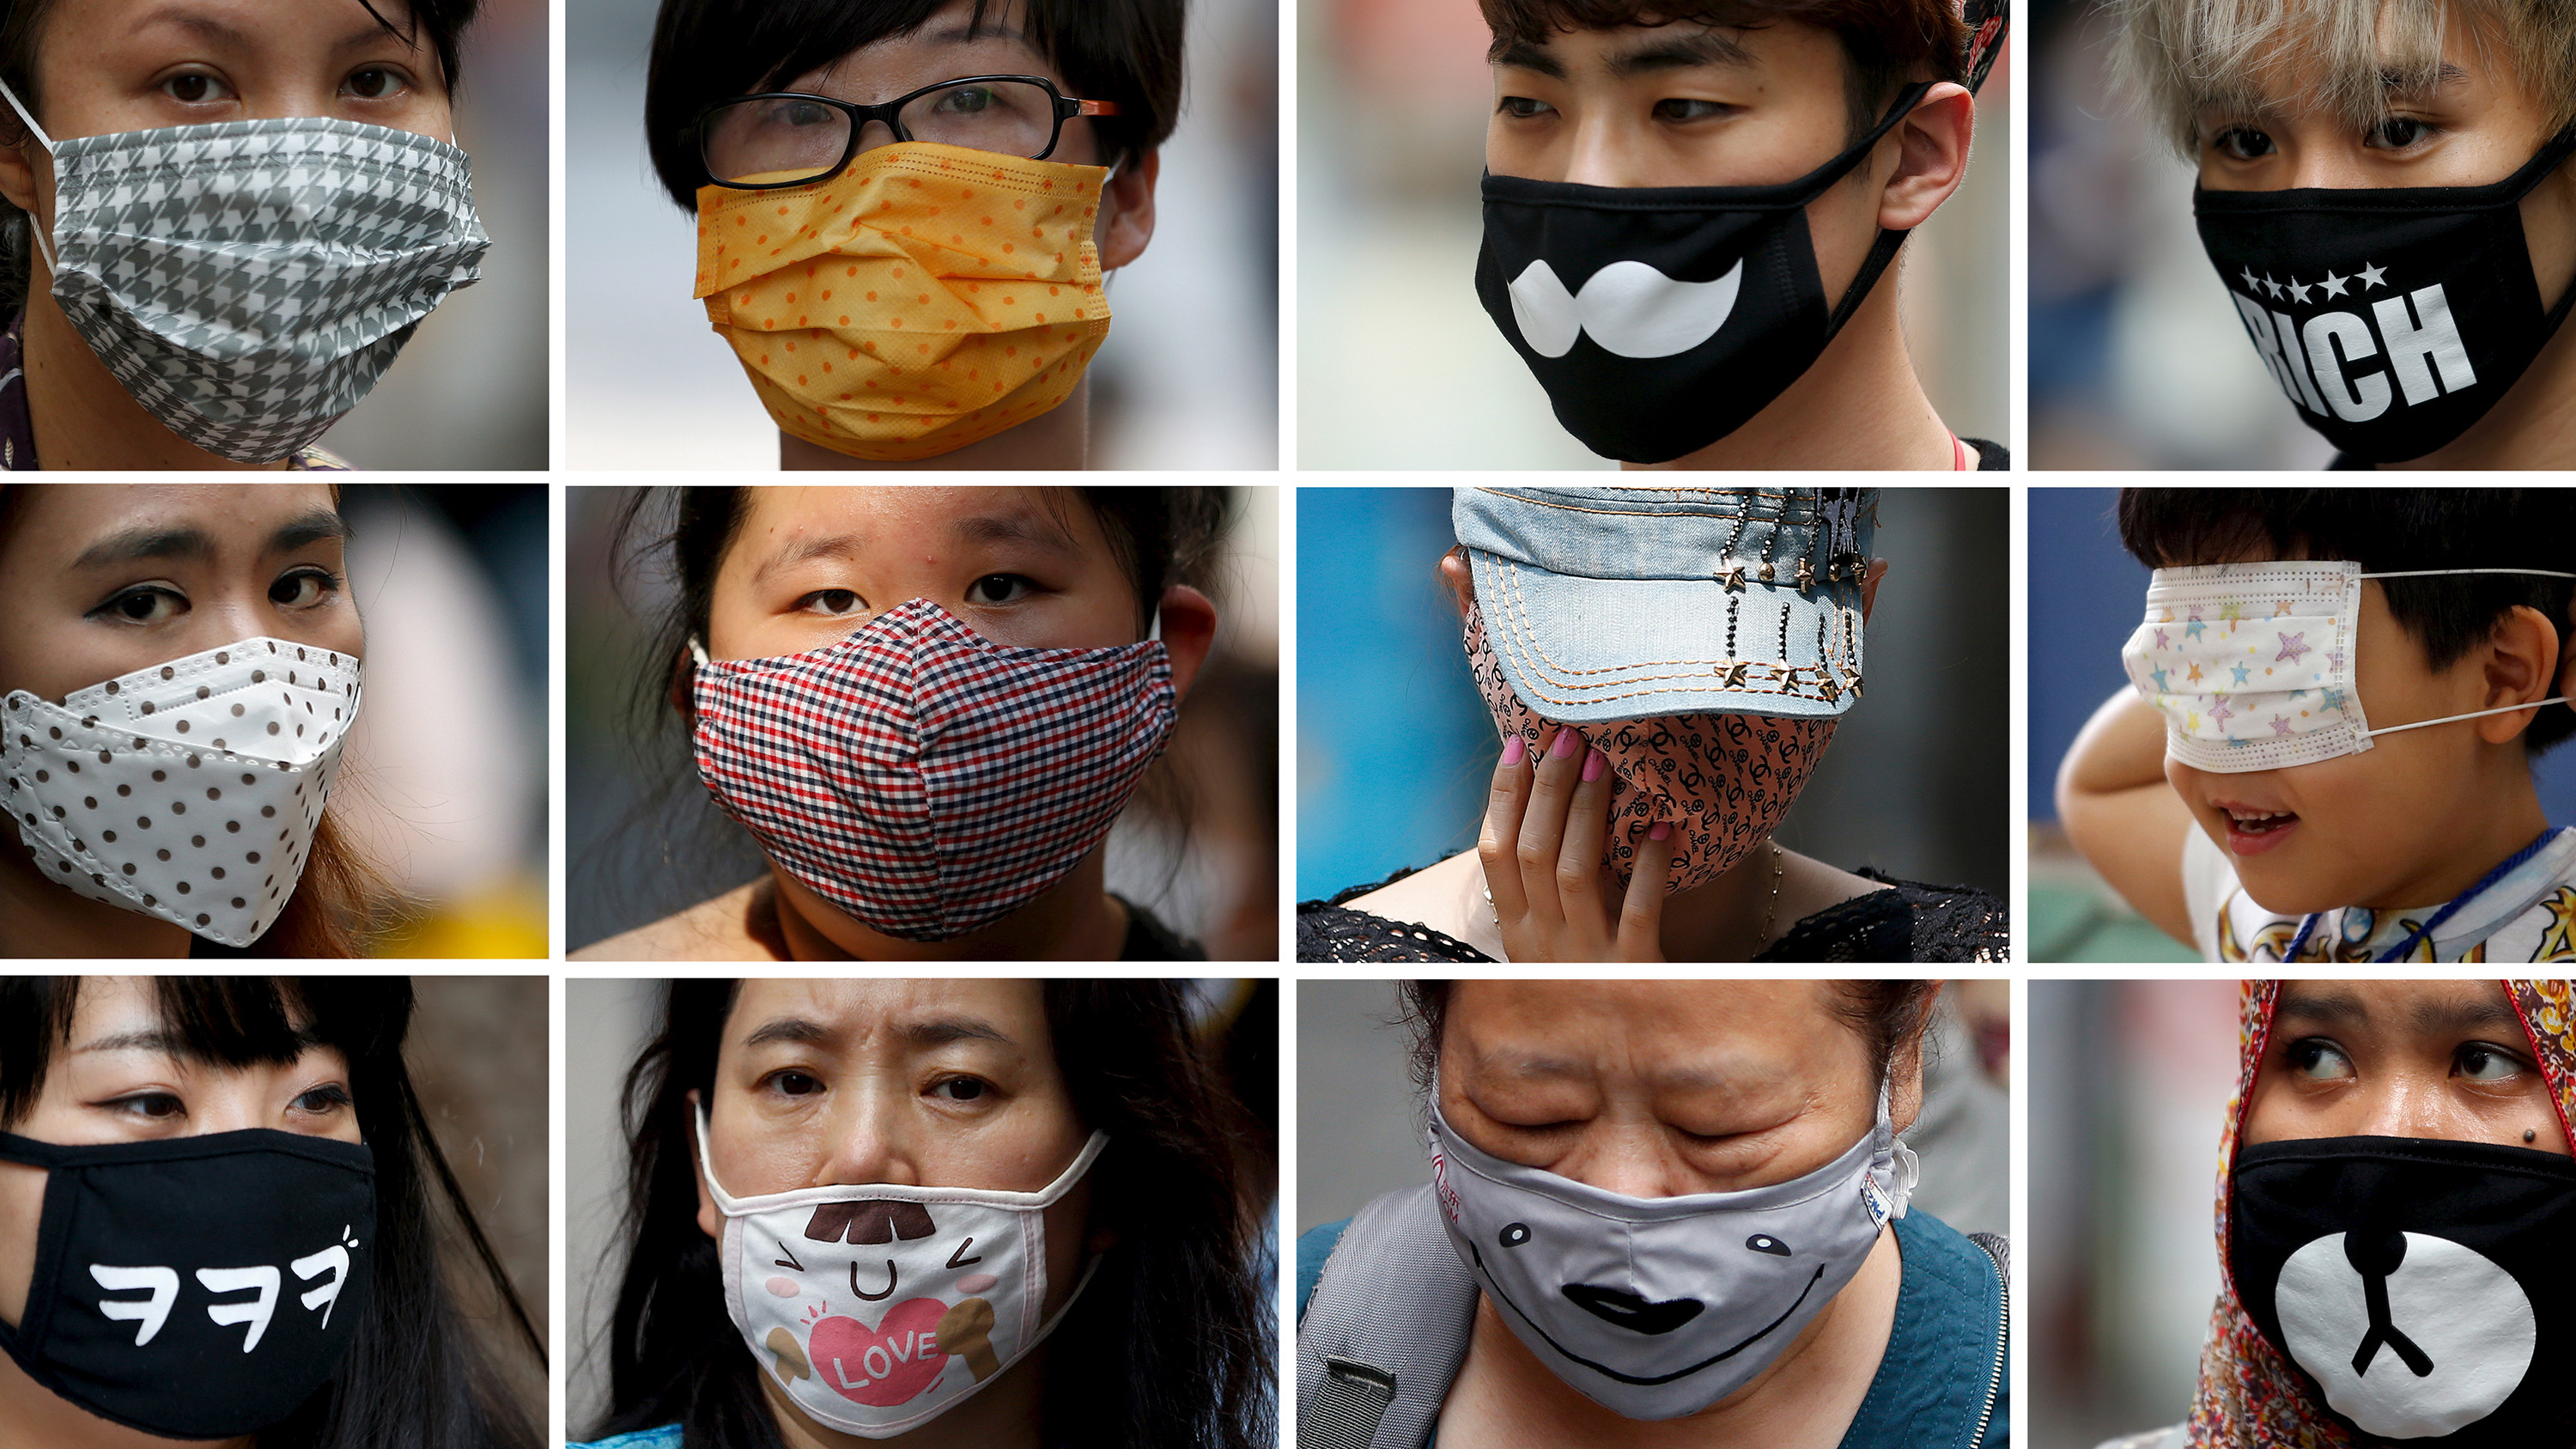 Combination picture shows people wearing a wide variety of masks.